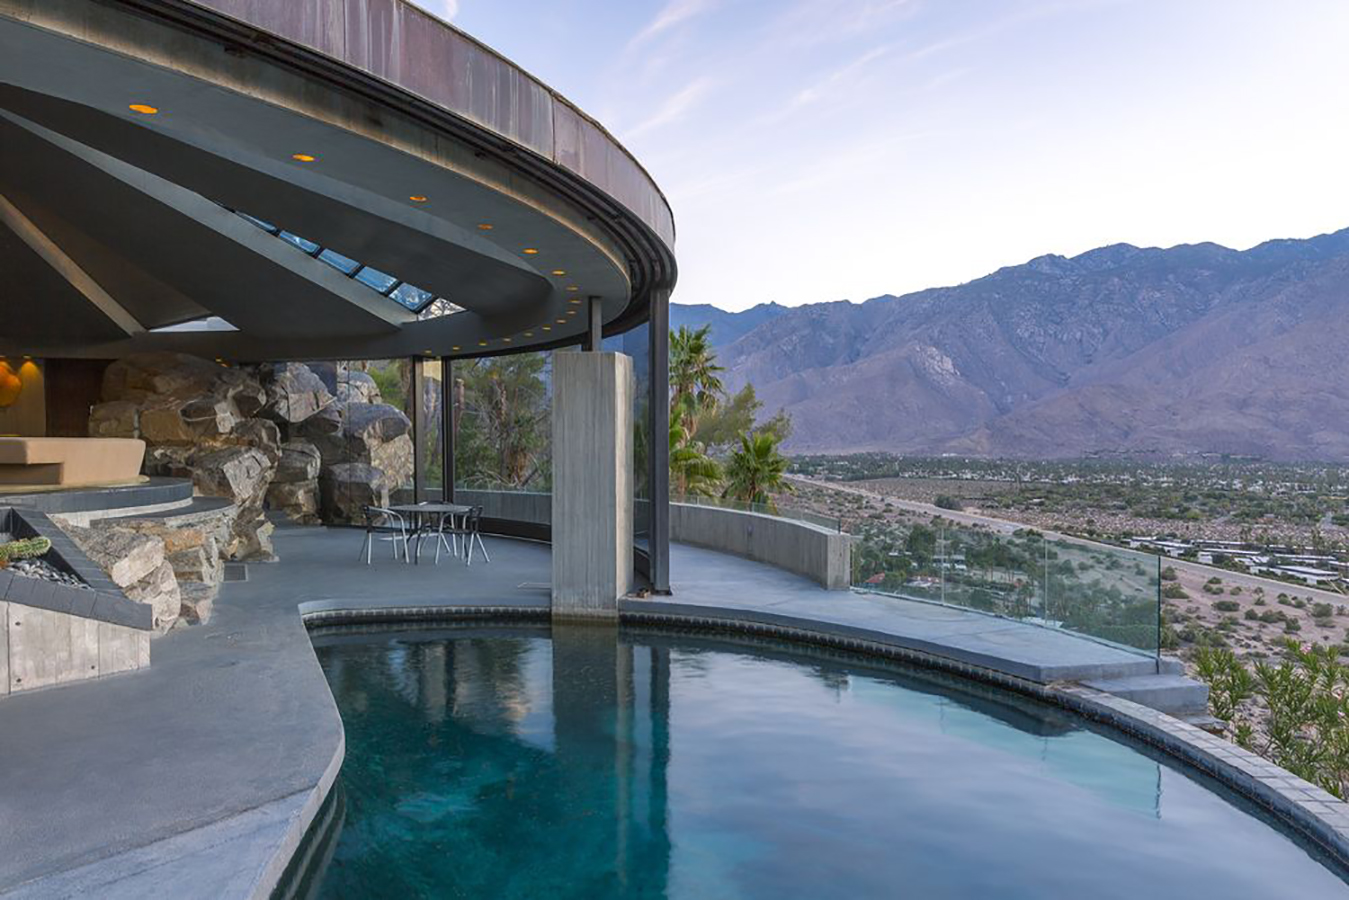 Elrod house designed by John Lautner